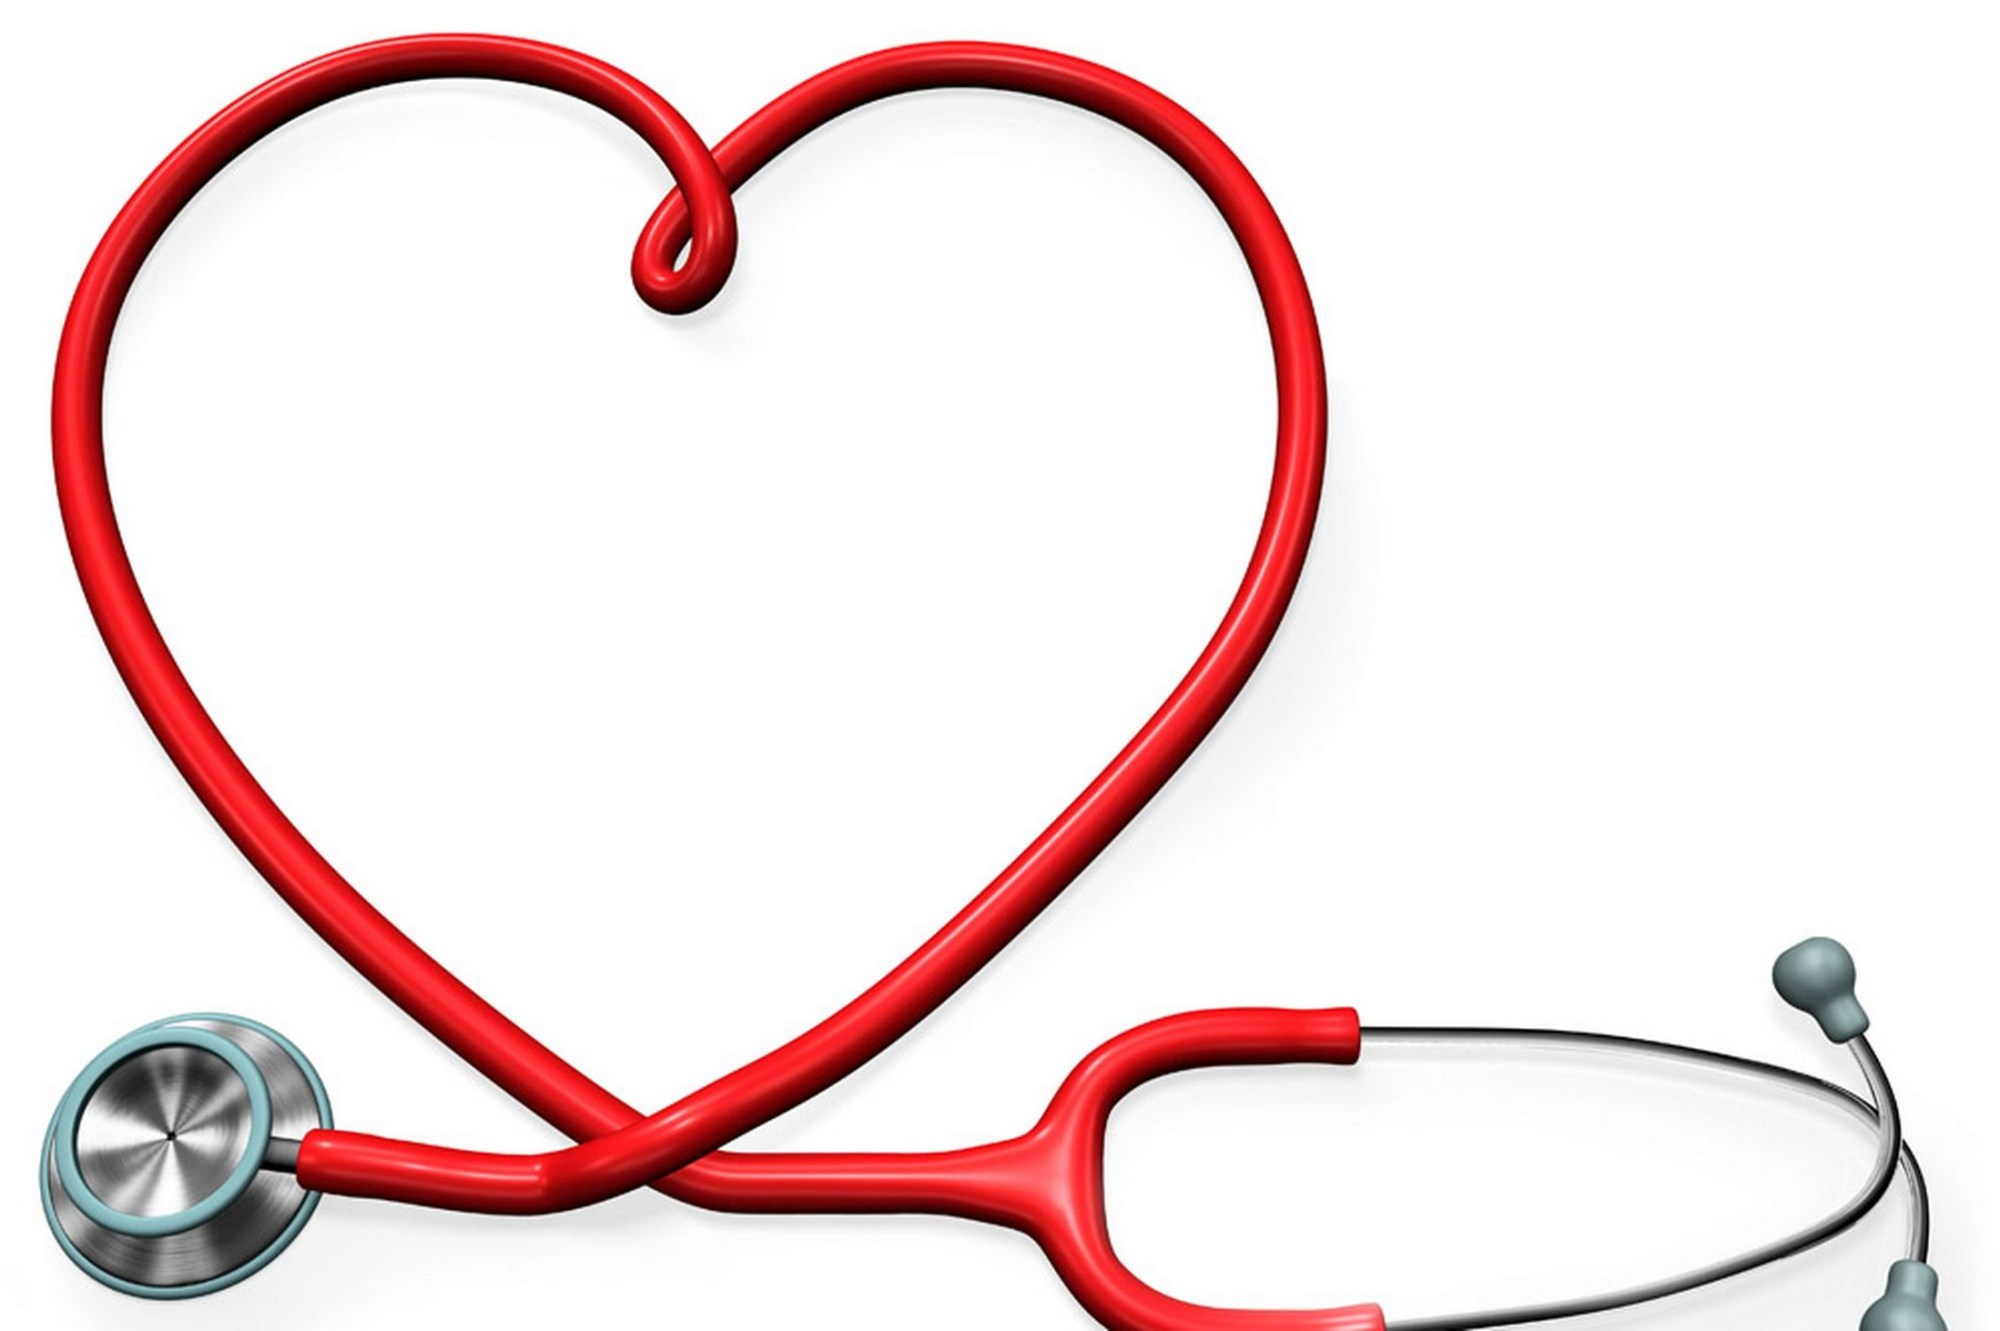 hight resolution of stethoscope clipart 5 2